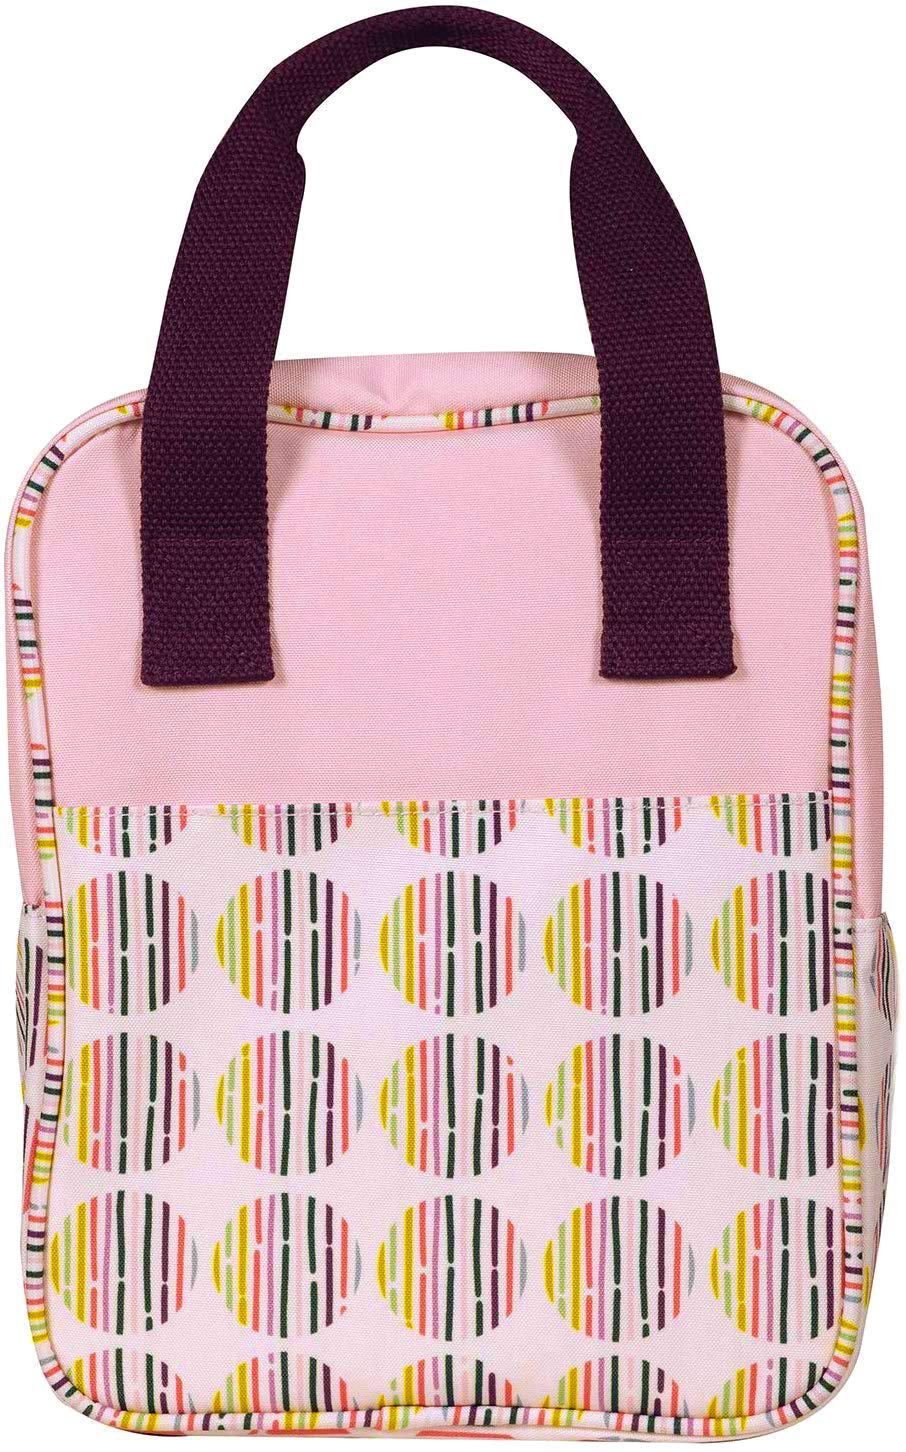 Women's Teen Girls Cute Insulated Reusable Canvas Lunch Box Soft Cooler Bag with Double Zipper Closure, Exterior Pocket, and Sturdy Handles, Dot Stripe